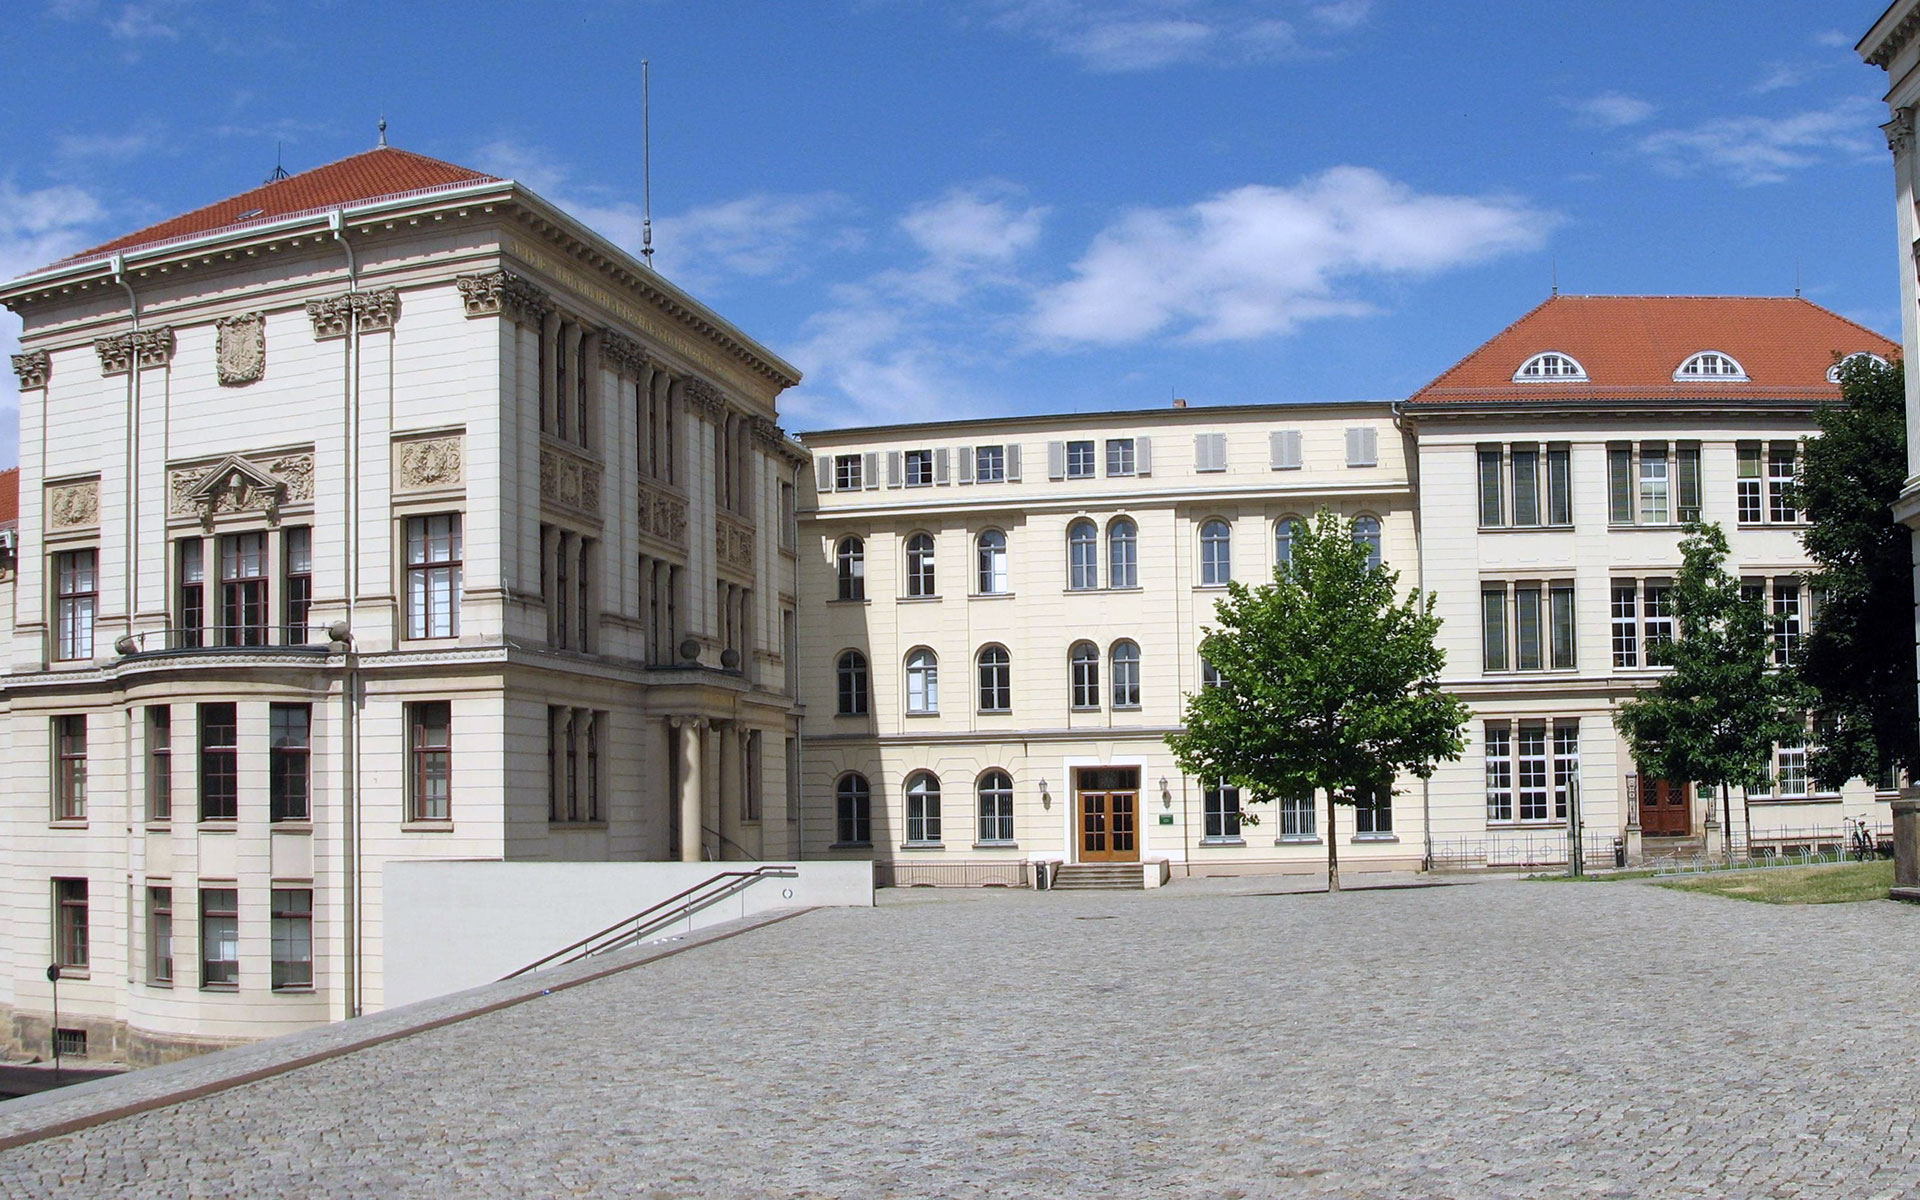 The Martin Luther University in the east German town of Halle (photo © Singhsomendra).